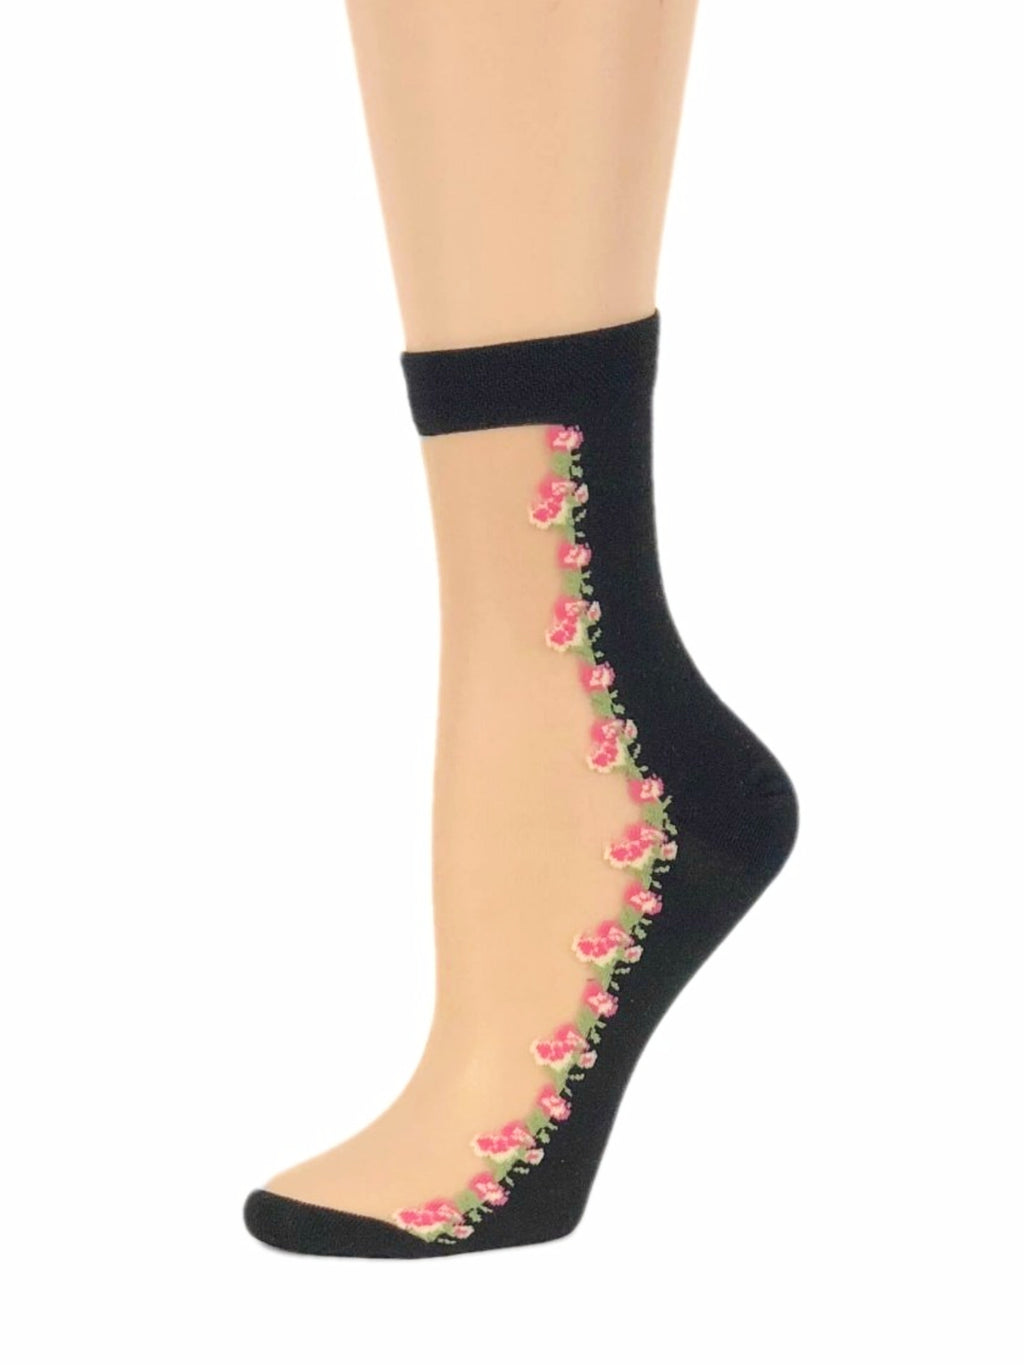 Soft Pink Floral Sheer Socks - Global Trendz Fashion®